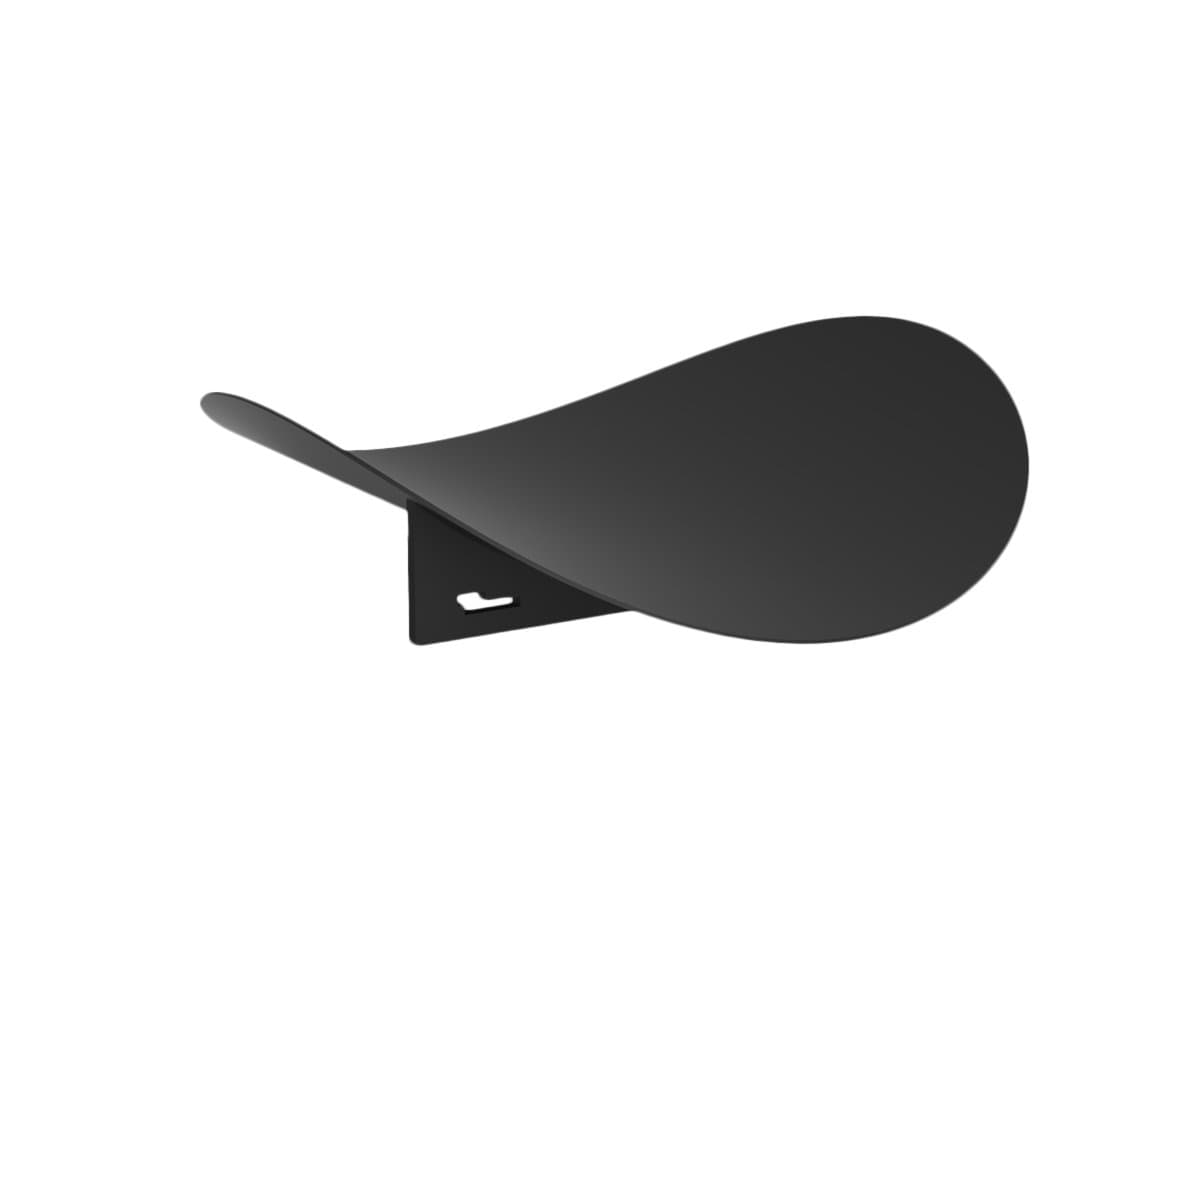 Hue Minimal Decorative Objects Leaf Black Round Tray